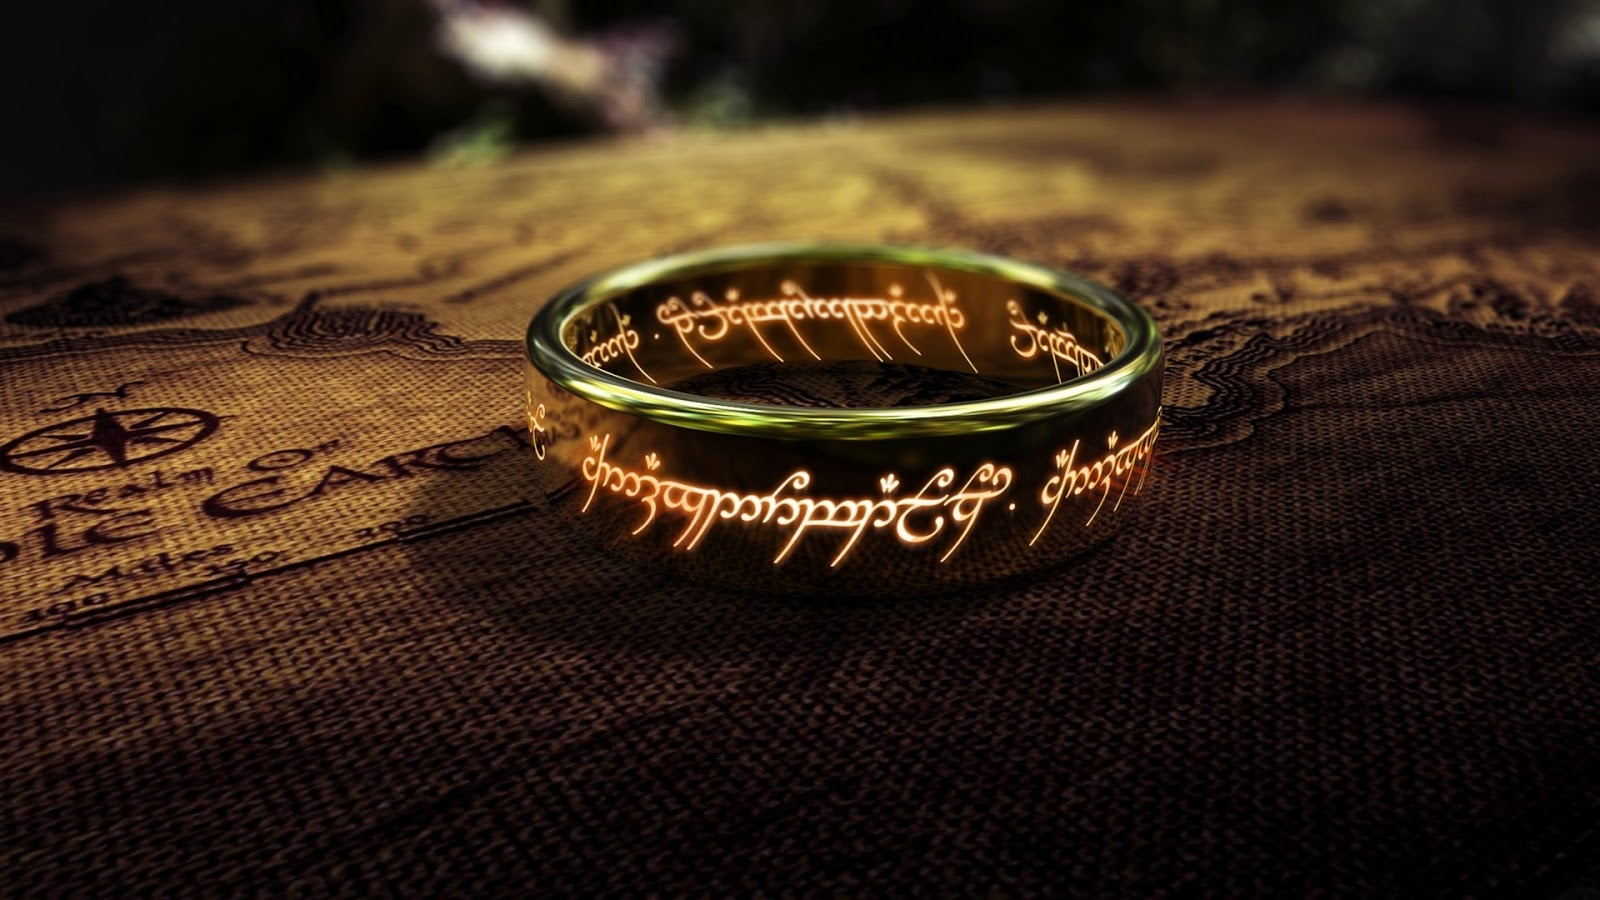 70 Lord Of The Rings Hd Wallpaper On Wallpapersafari